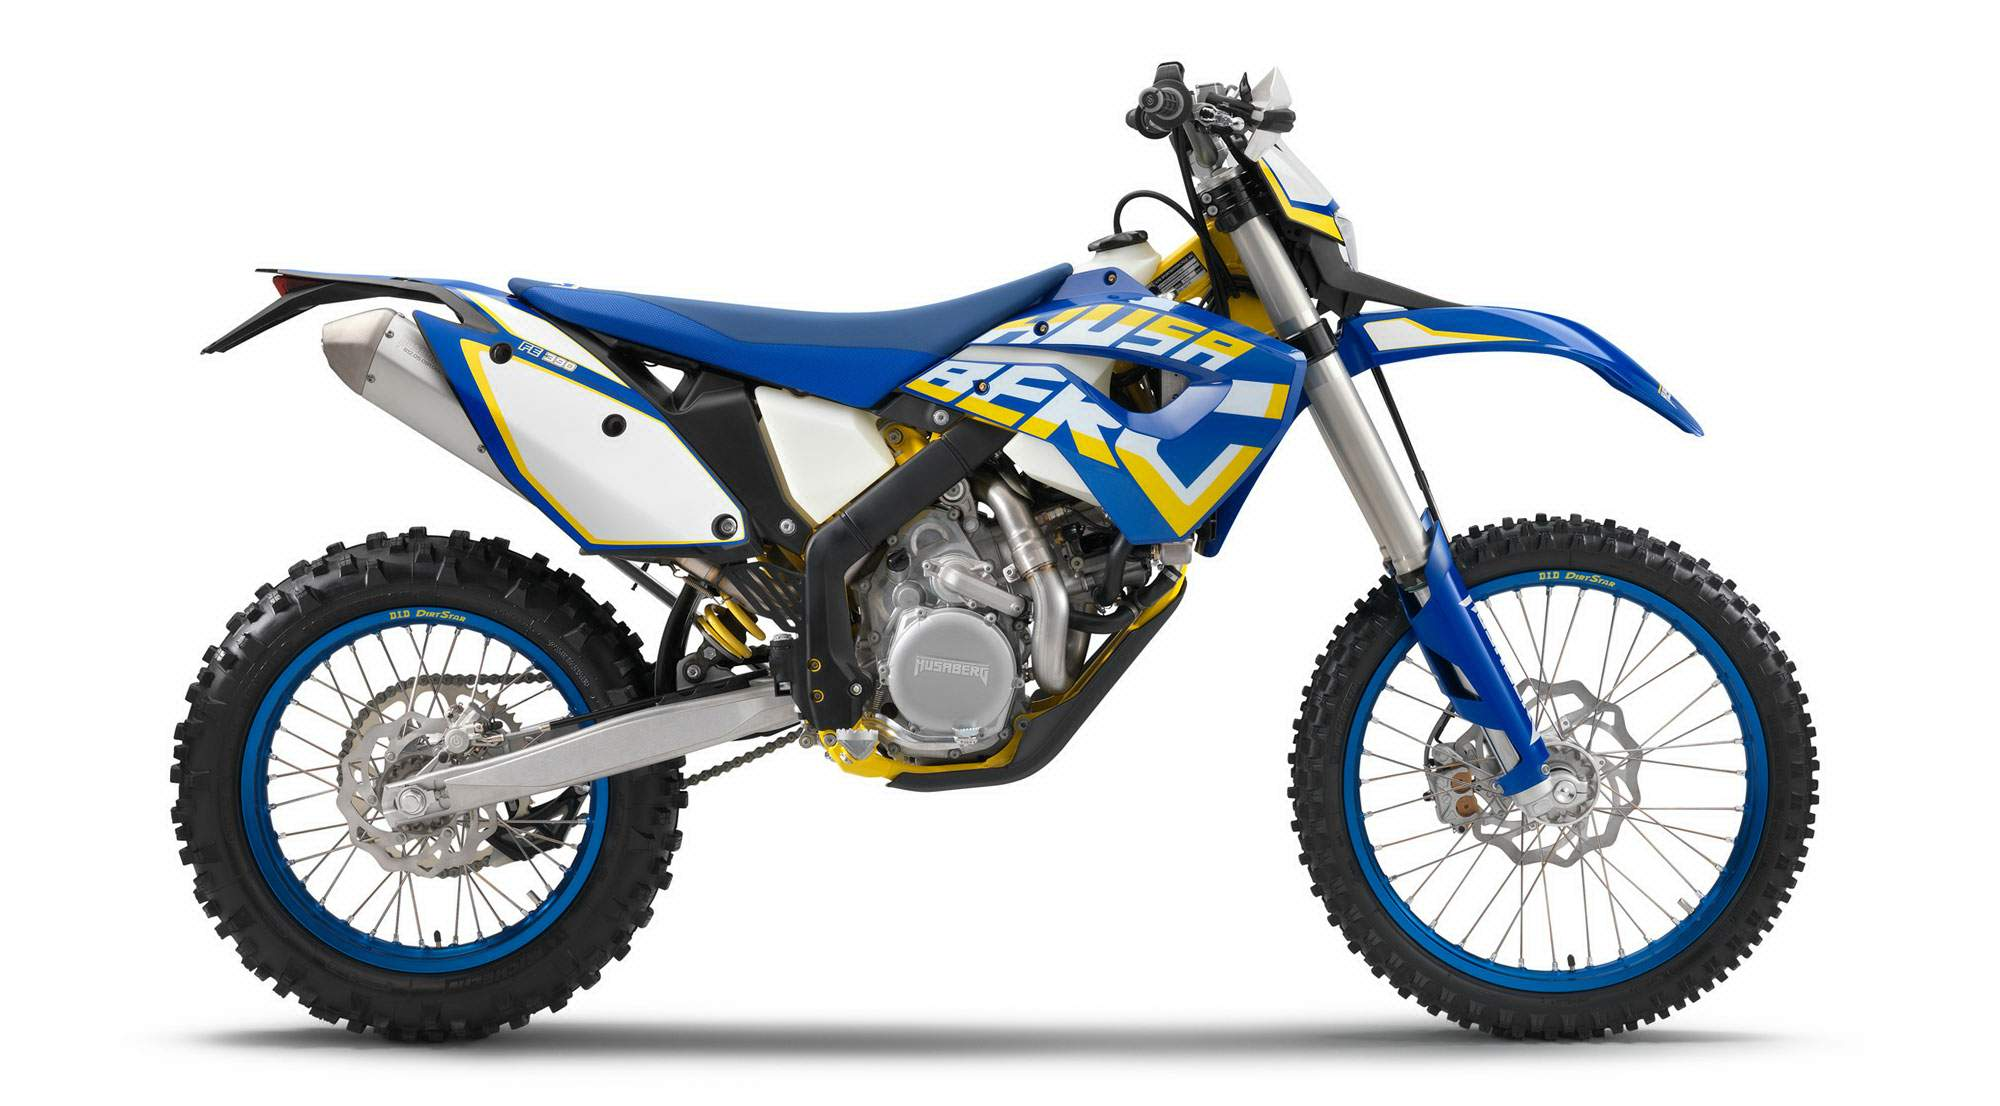 Husaberg FE 390 Enduro technical specifications